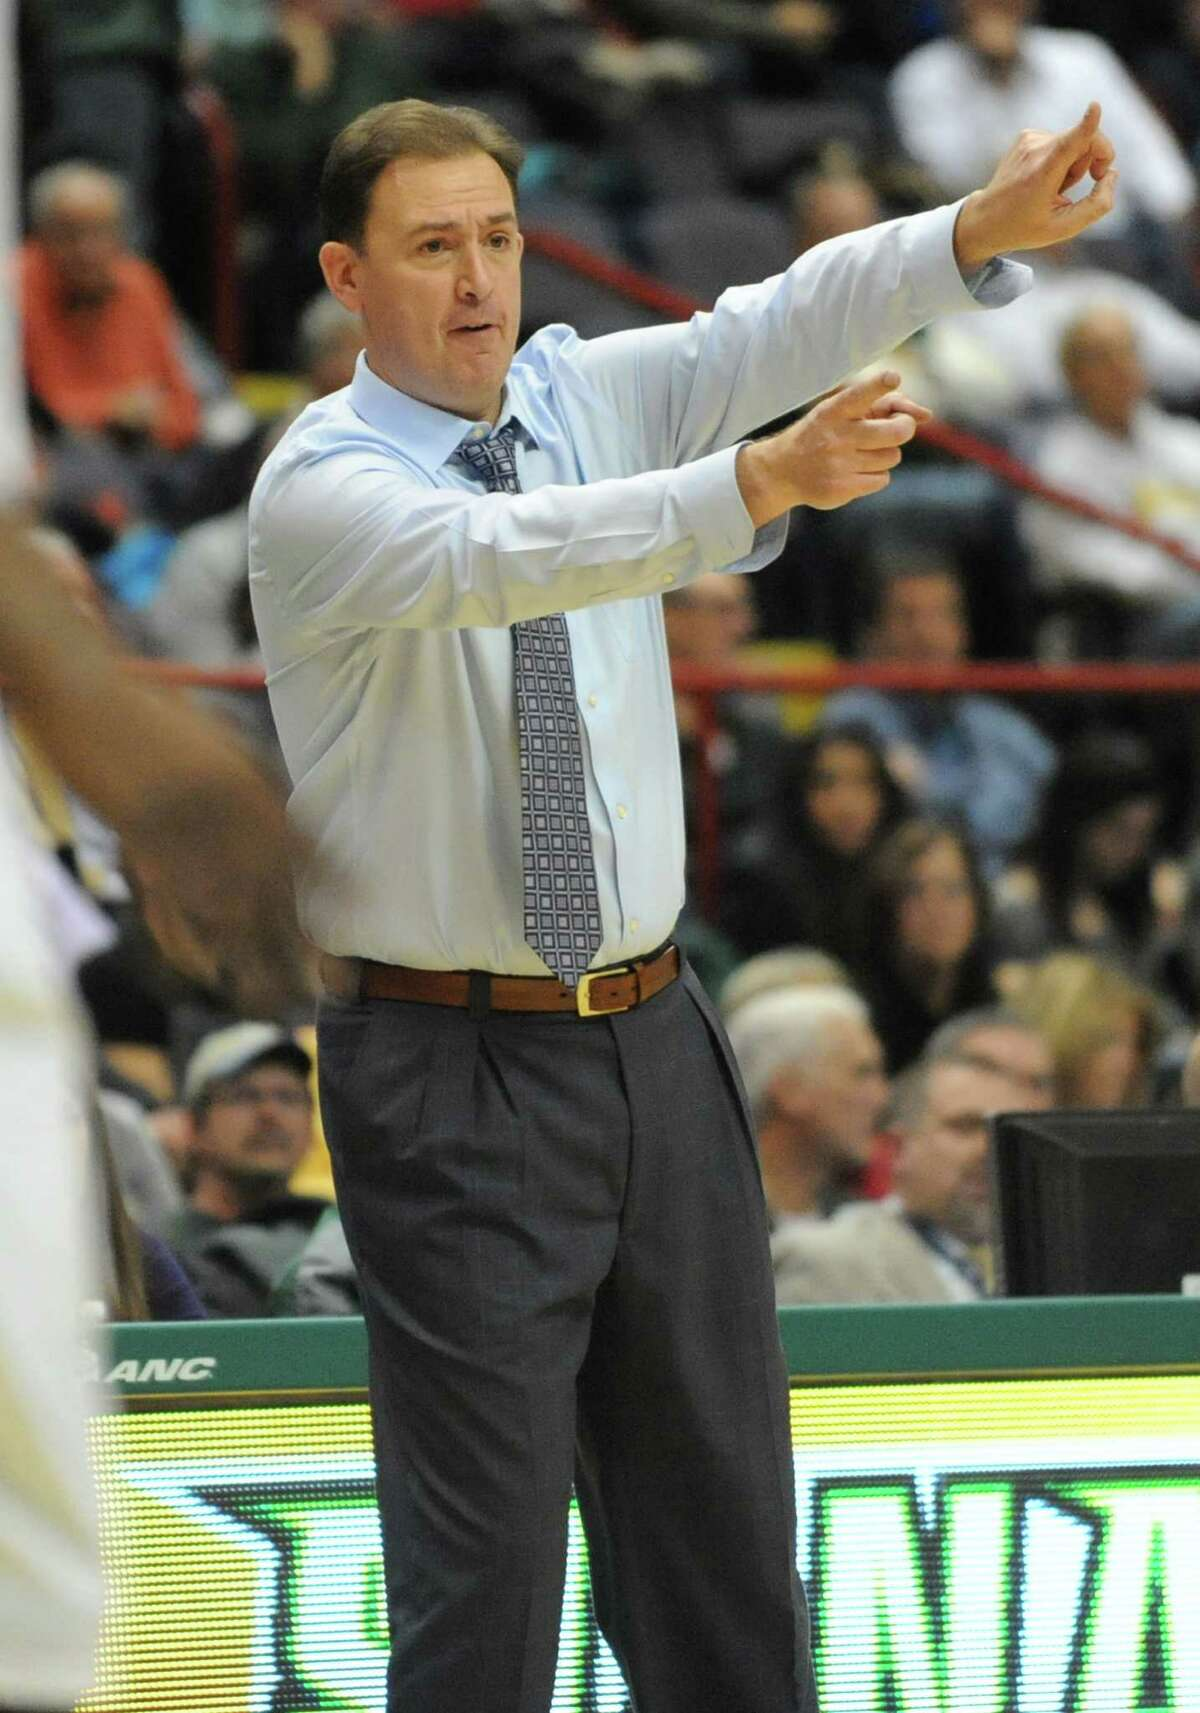 UAlbany head coach Will Brown gives direction from the sideline during a basketball game against Siena at the Times Union Center Friday, Nov. 8, 2013 in Albany, N.Y. (Lori Van Buren / Times Union)